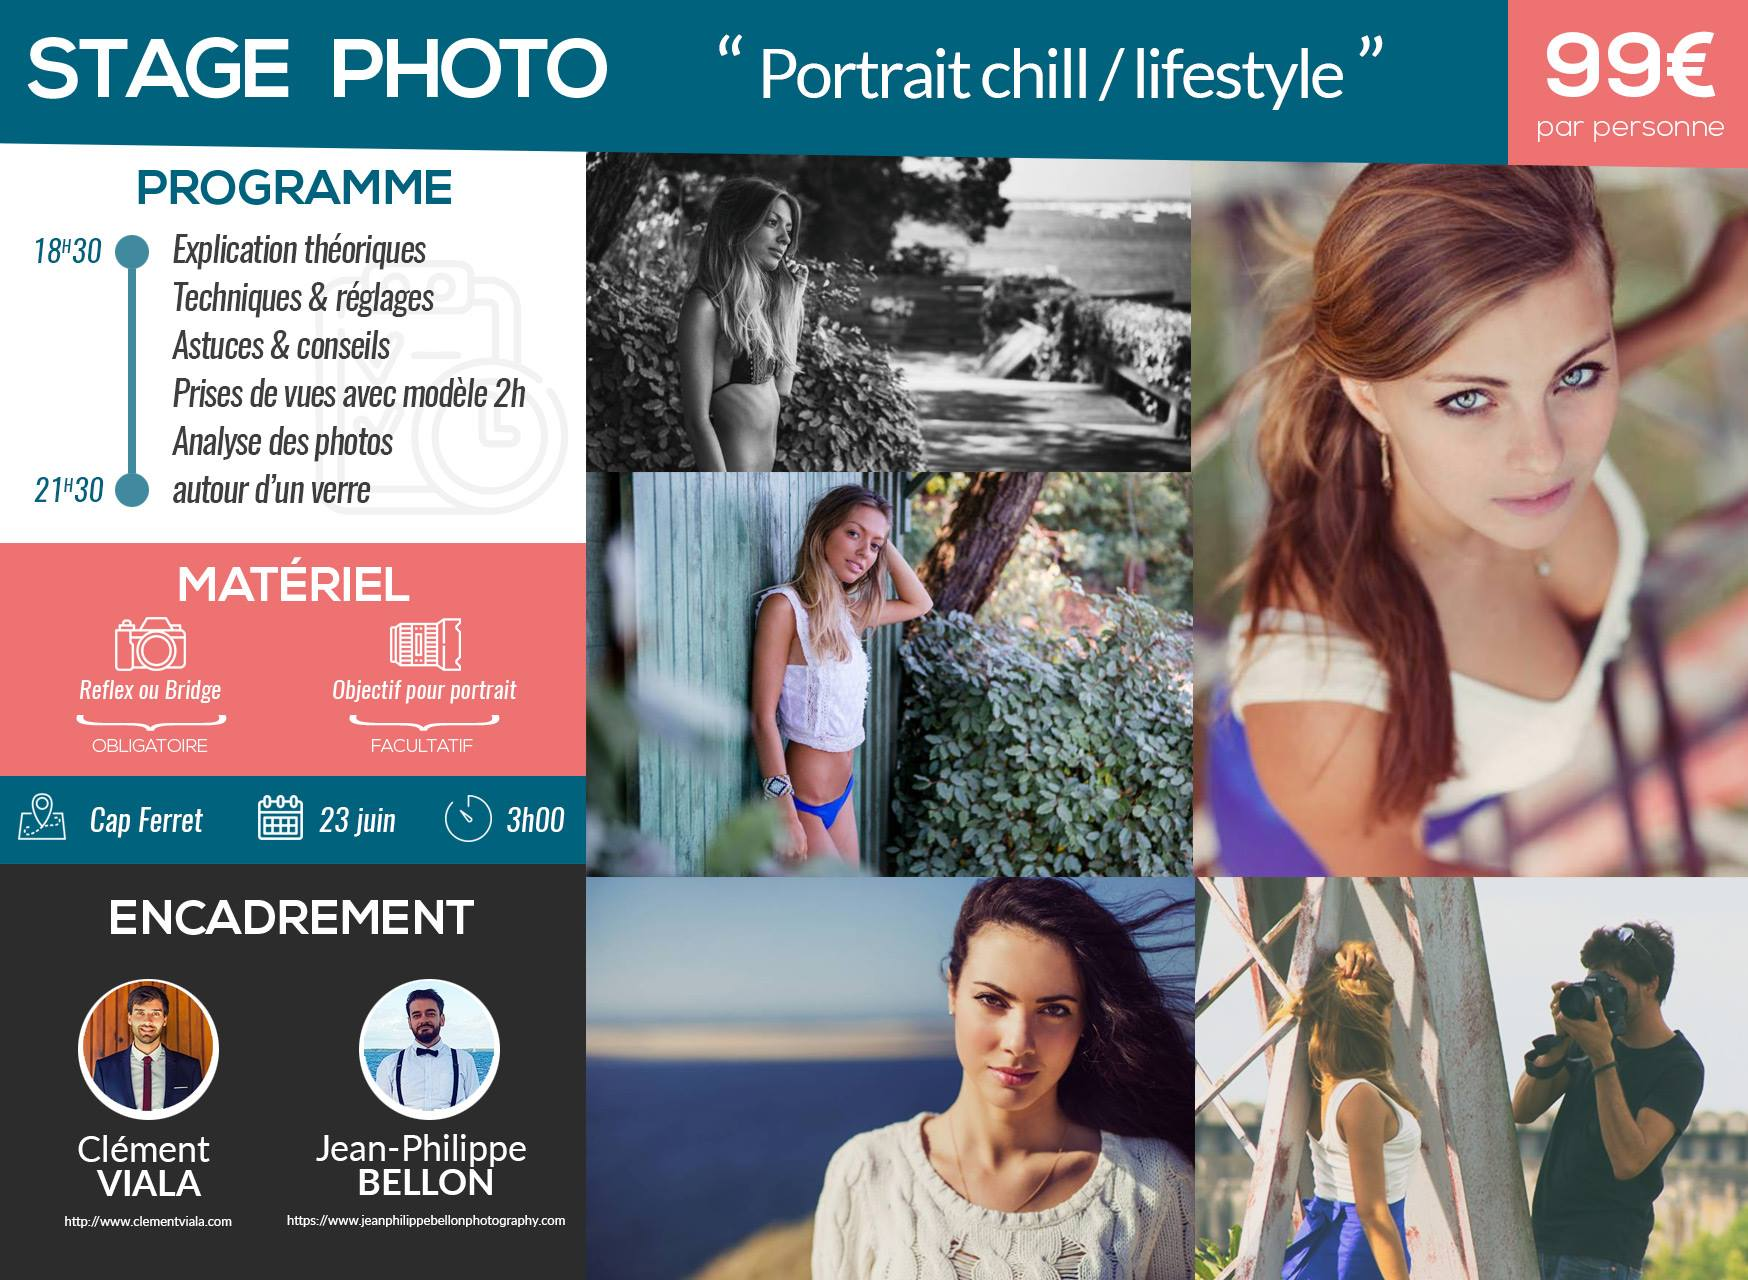 Cours photo : le portrait en mode lifestyle/chill au Cap Ferret